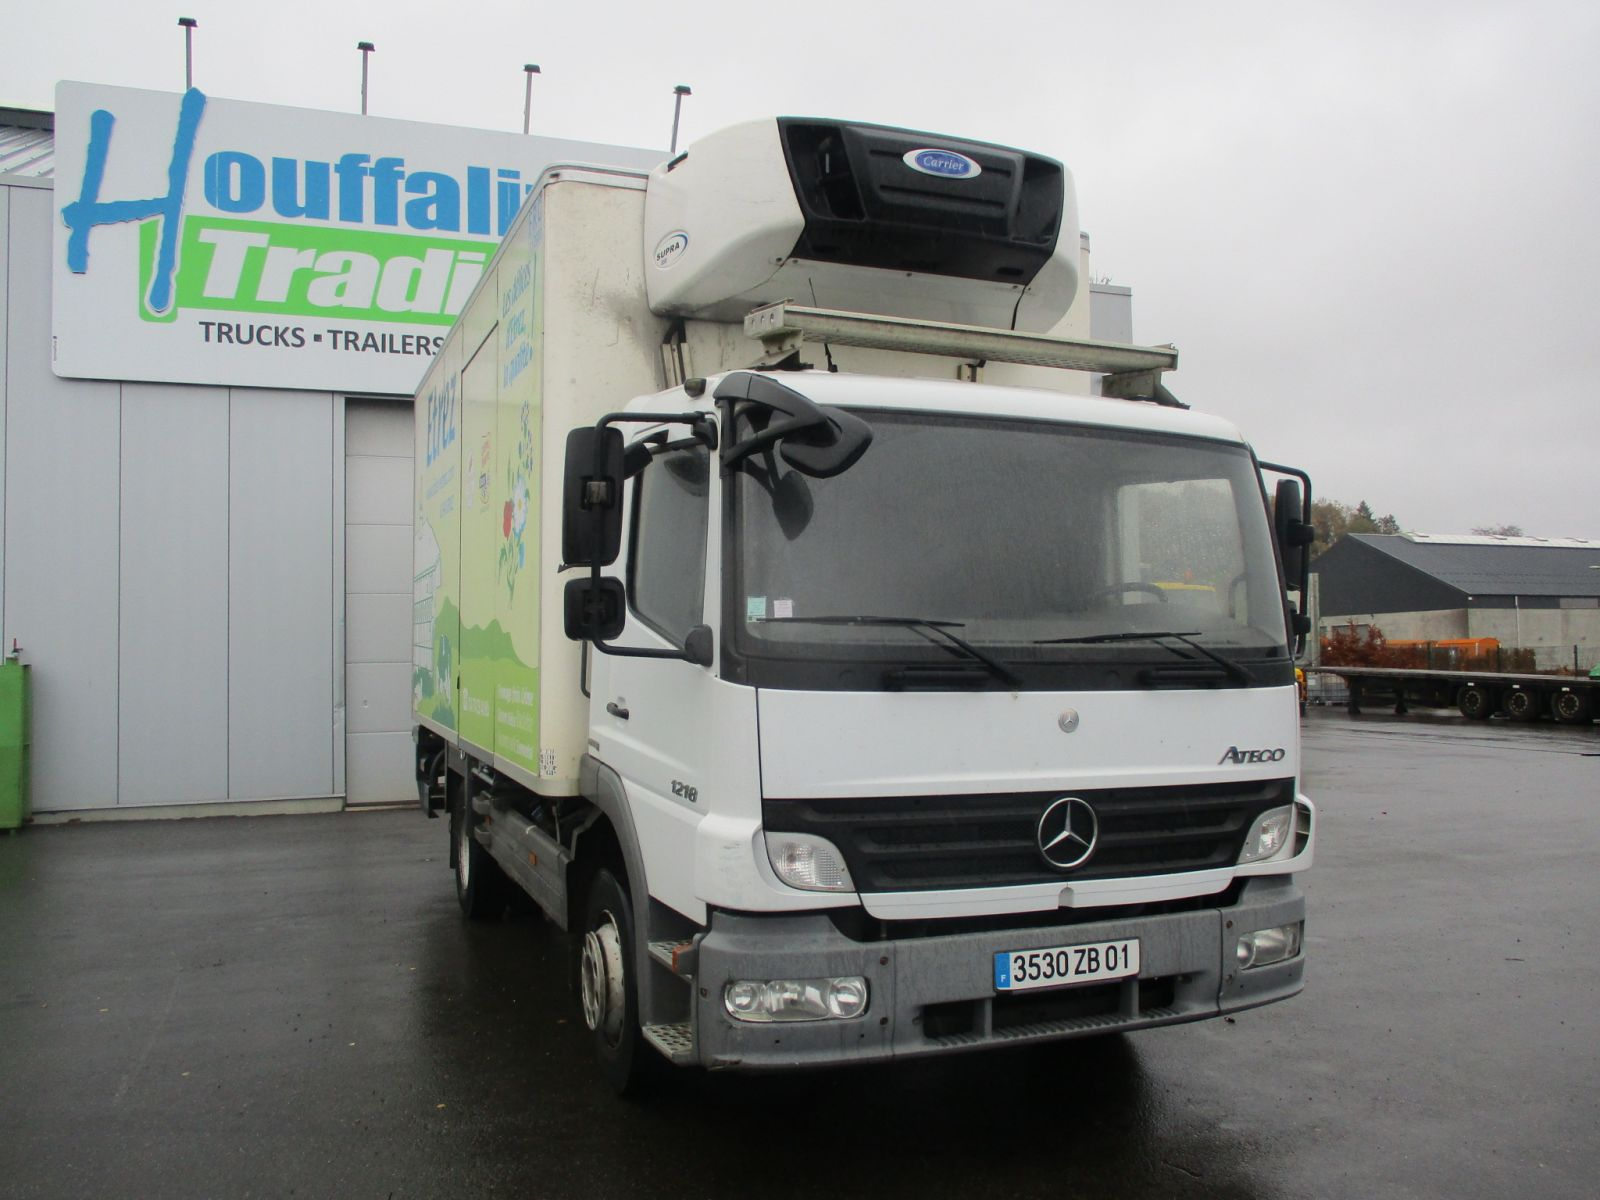 Vente occasion Porteur - MERCEDES ATEGO 1218 Camion (Belgique - Europe) - Houffalize Trading s.a.